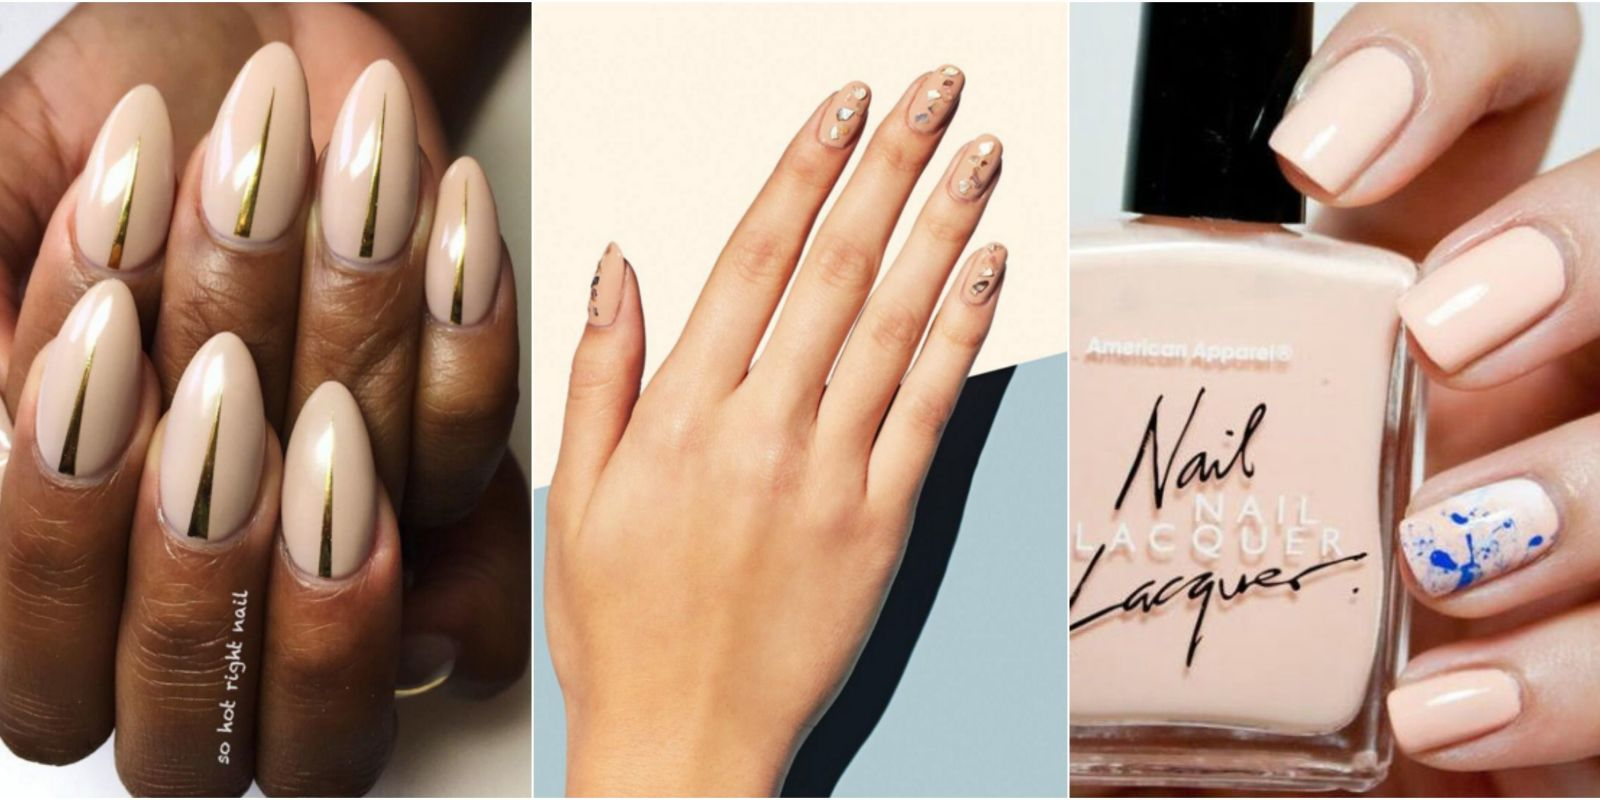 17 nude color nail designs to try ideas for nude nail art prinsesfo Gallery